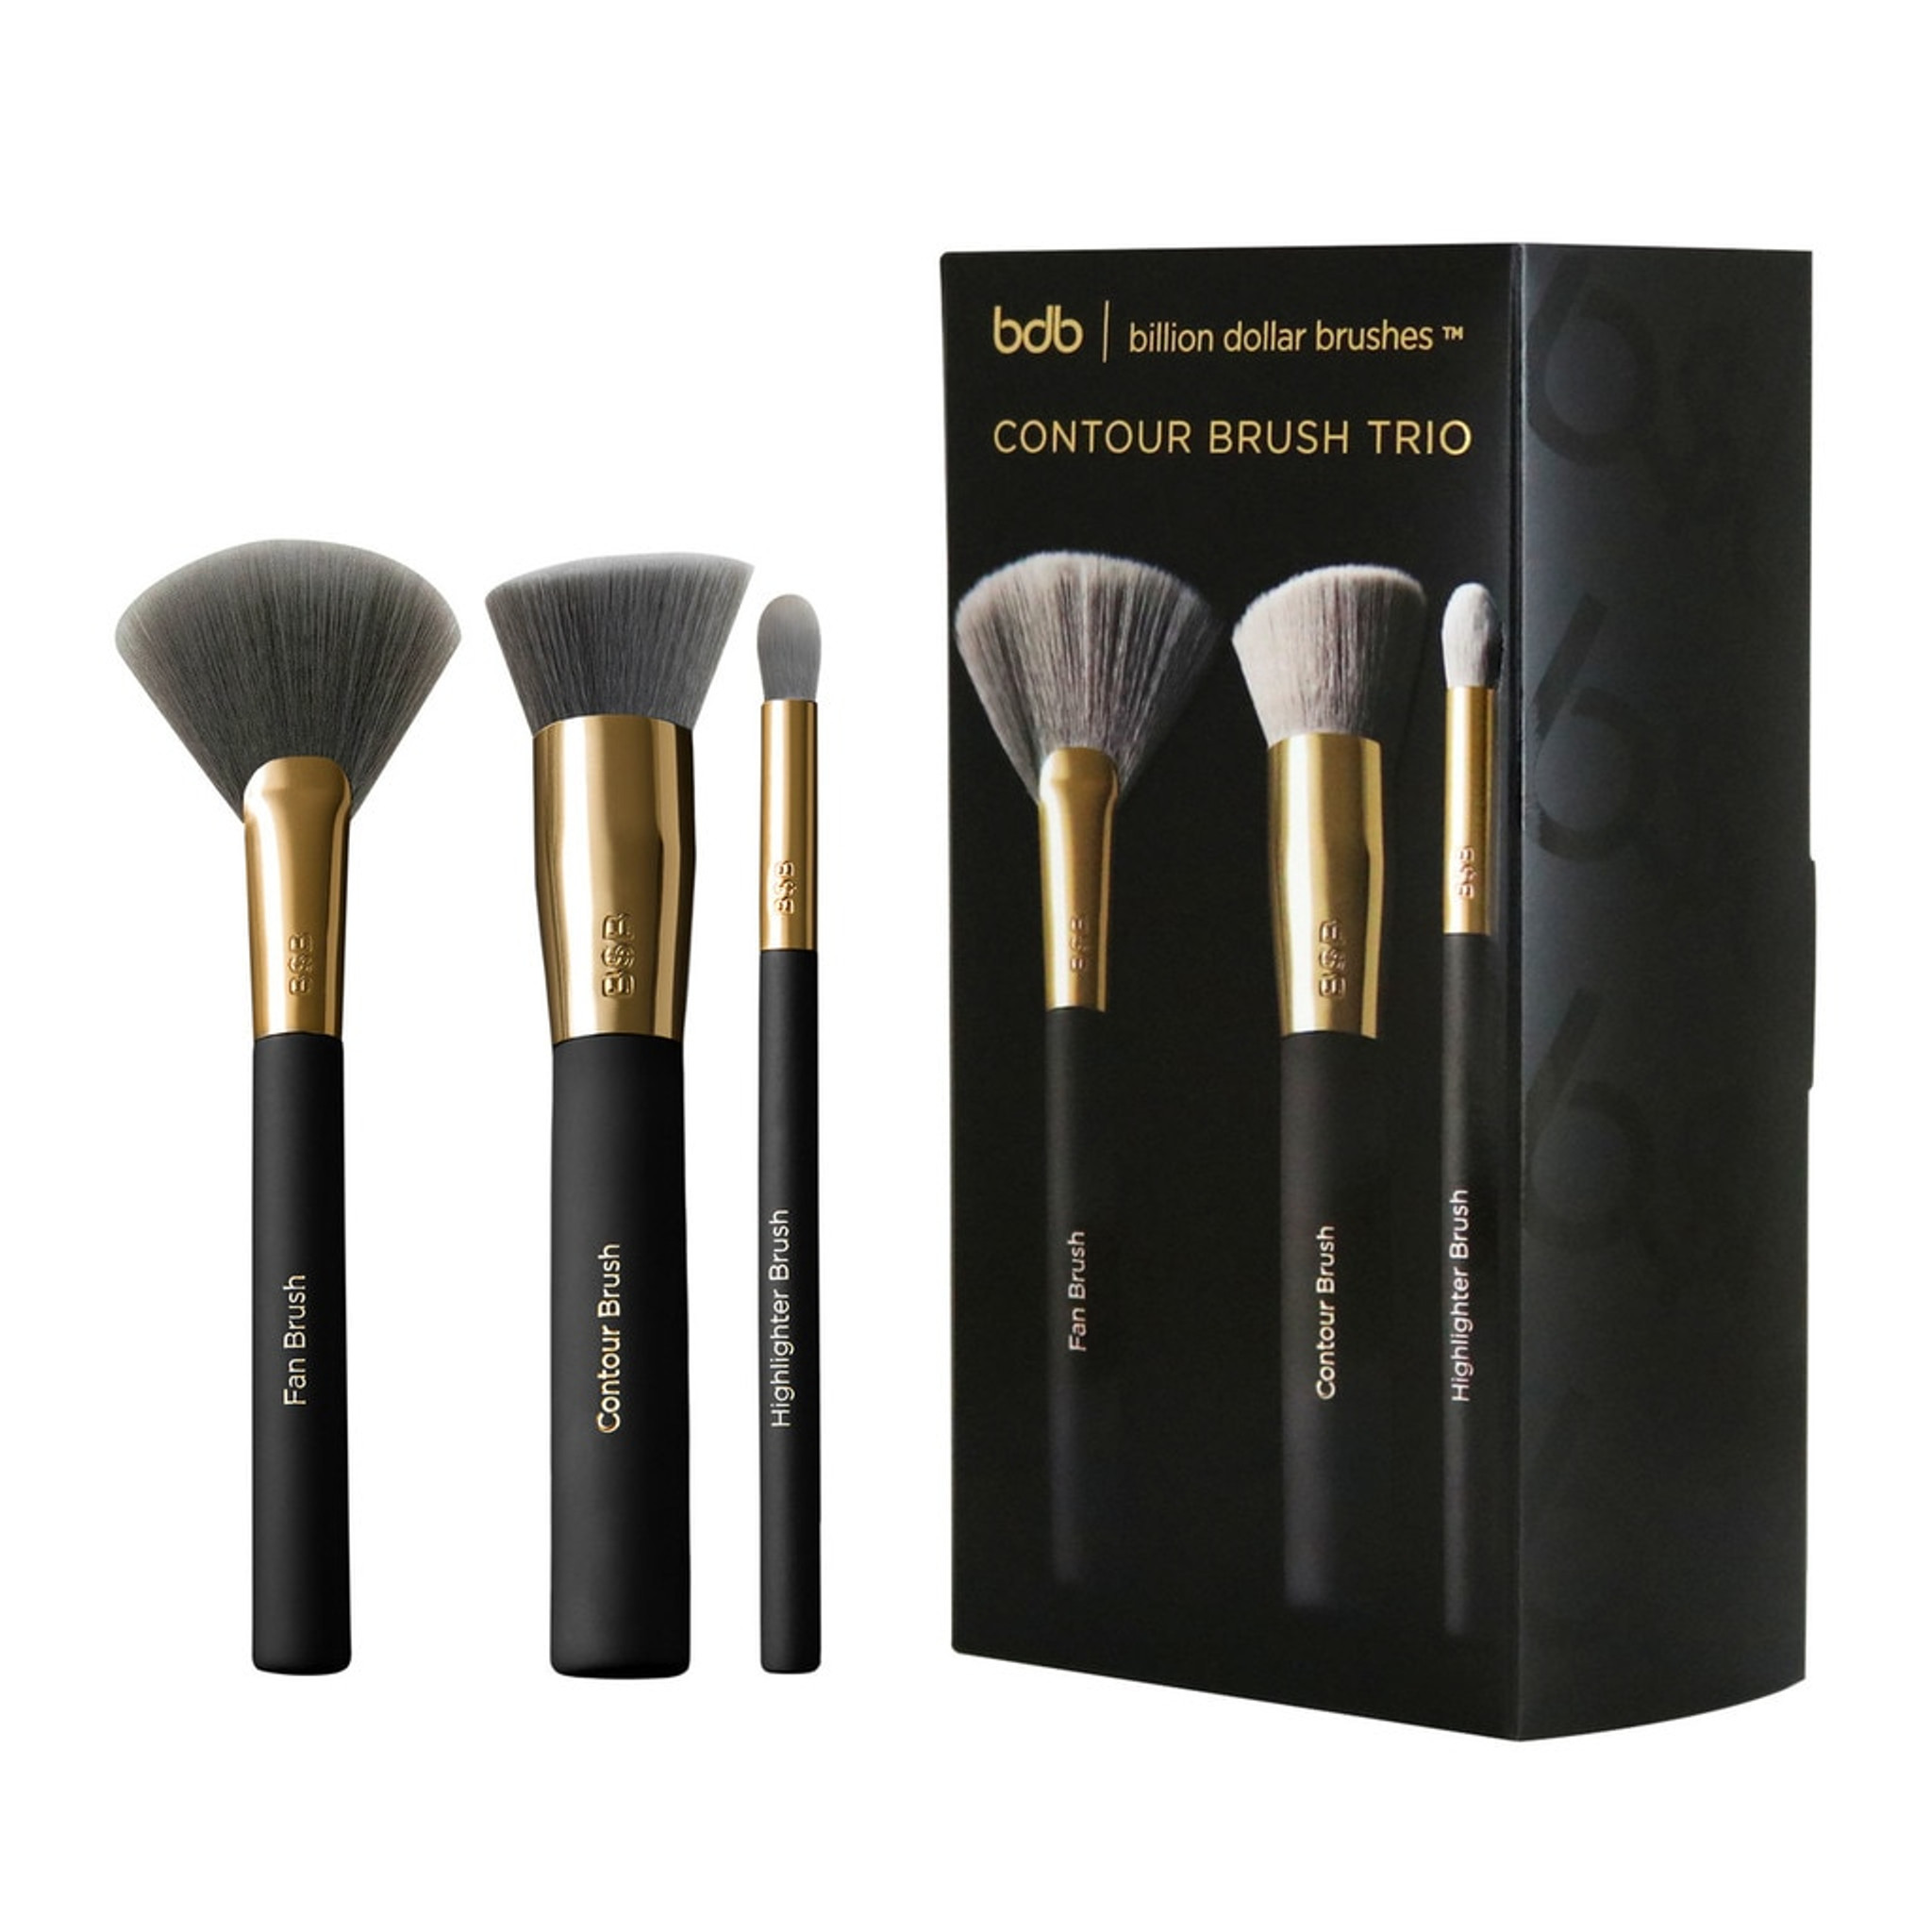 bdb contour brush trio